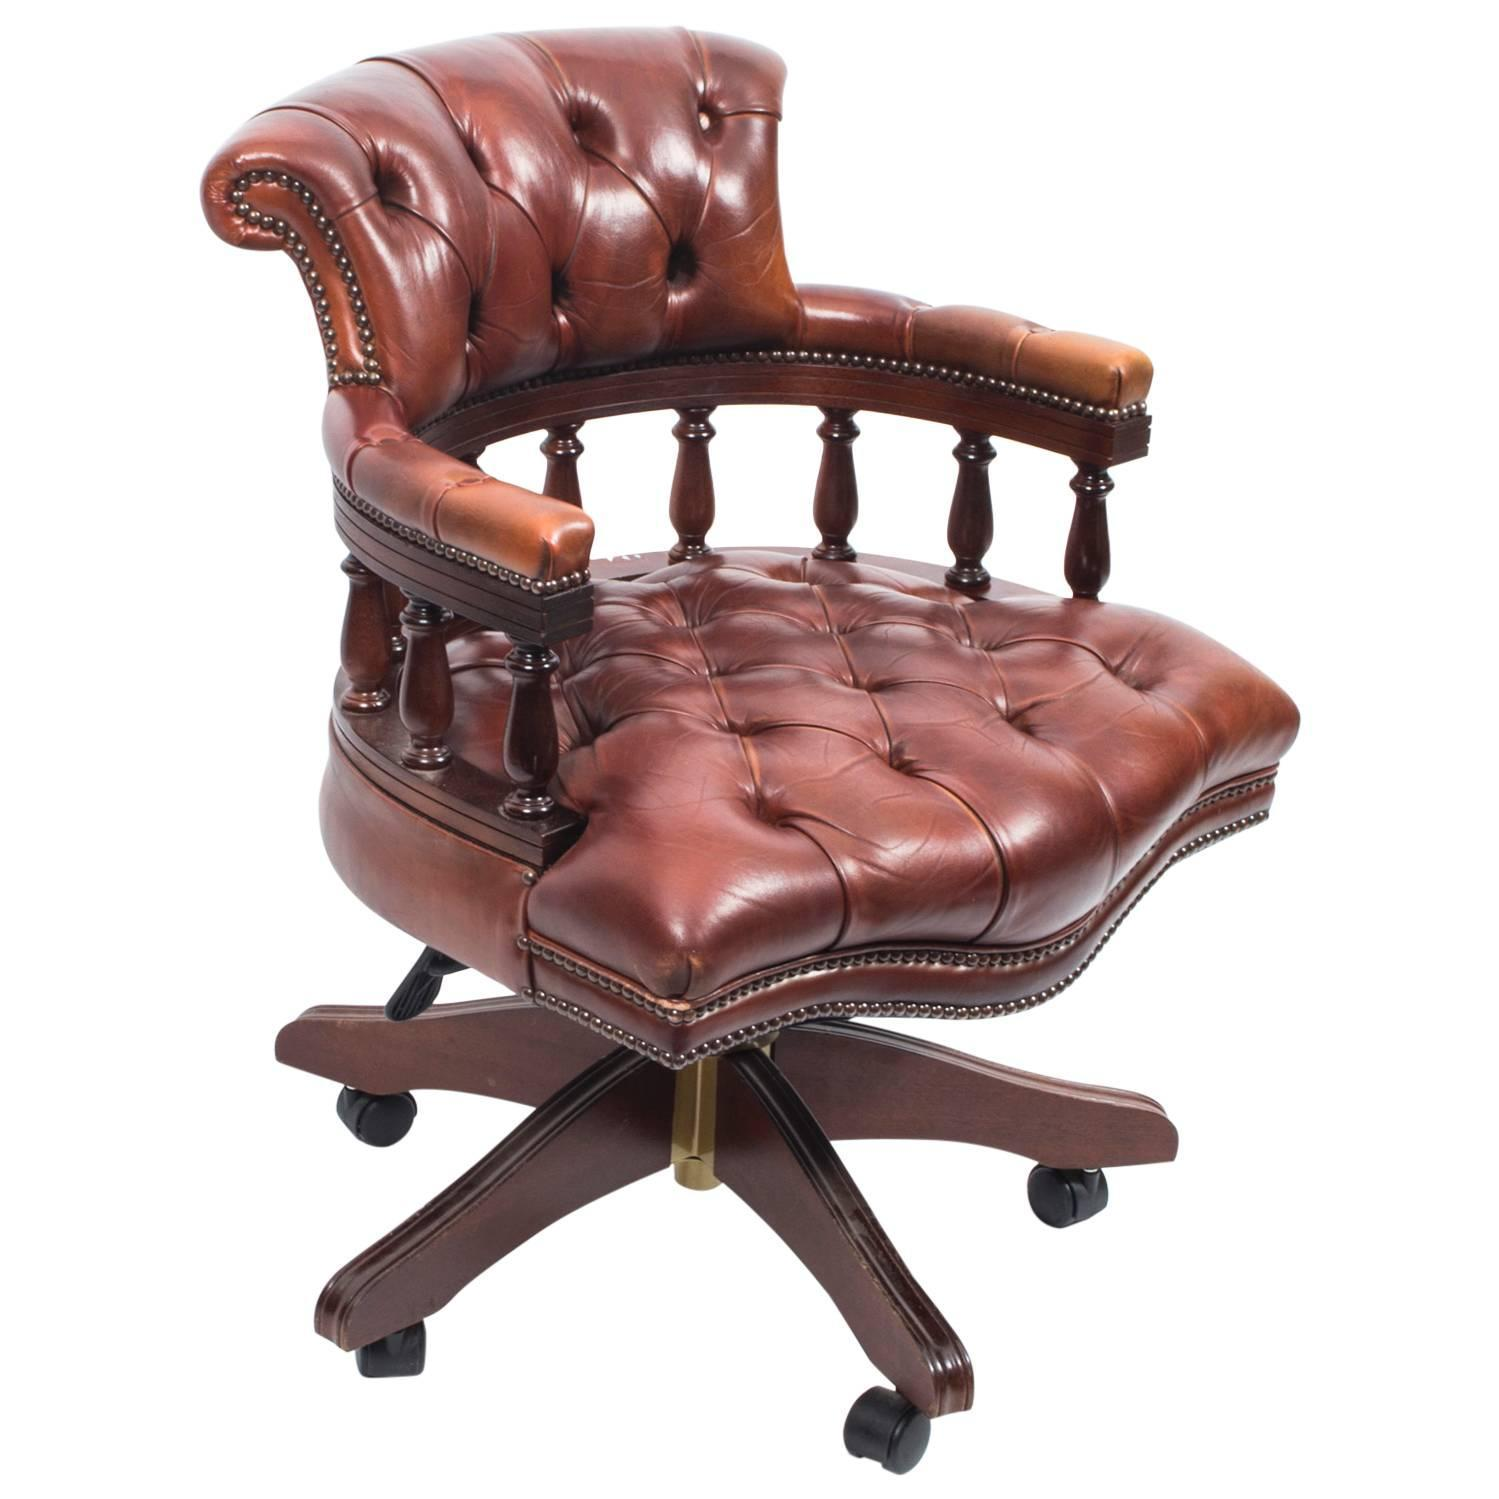 desk chair for sale small round outdoor cushions english handmade leather captains champagne